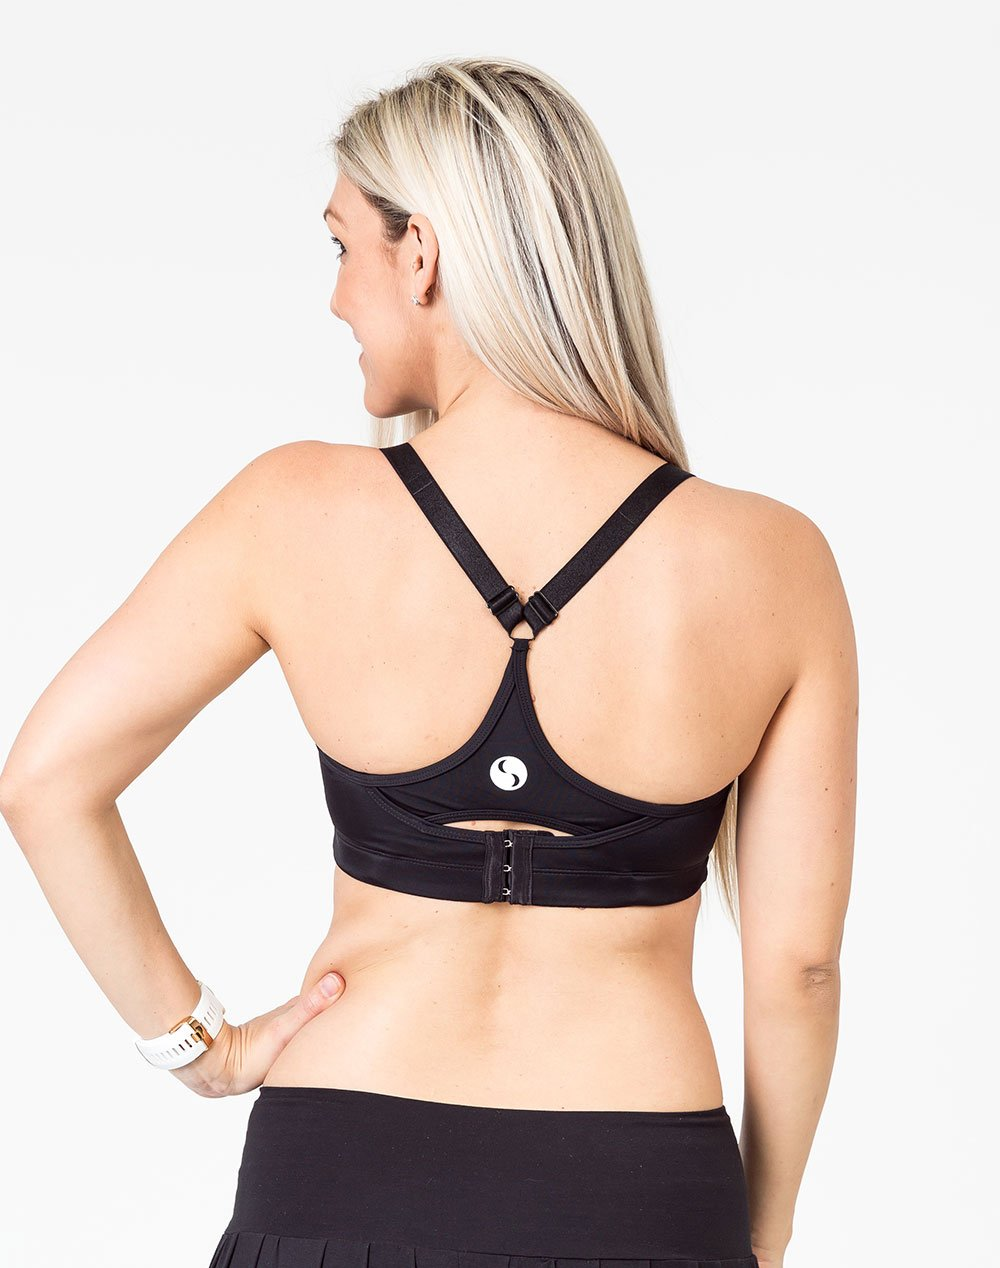 08e6d41813c Cadenshae - Fit2Feed Activewear Bra. Click to enlarge image